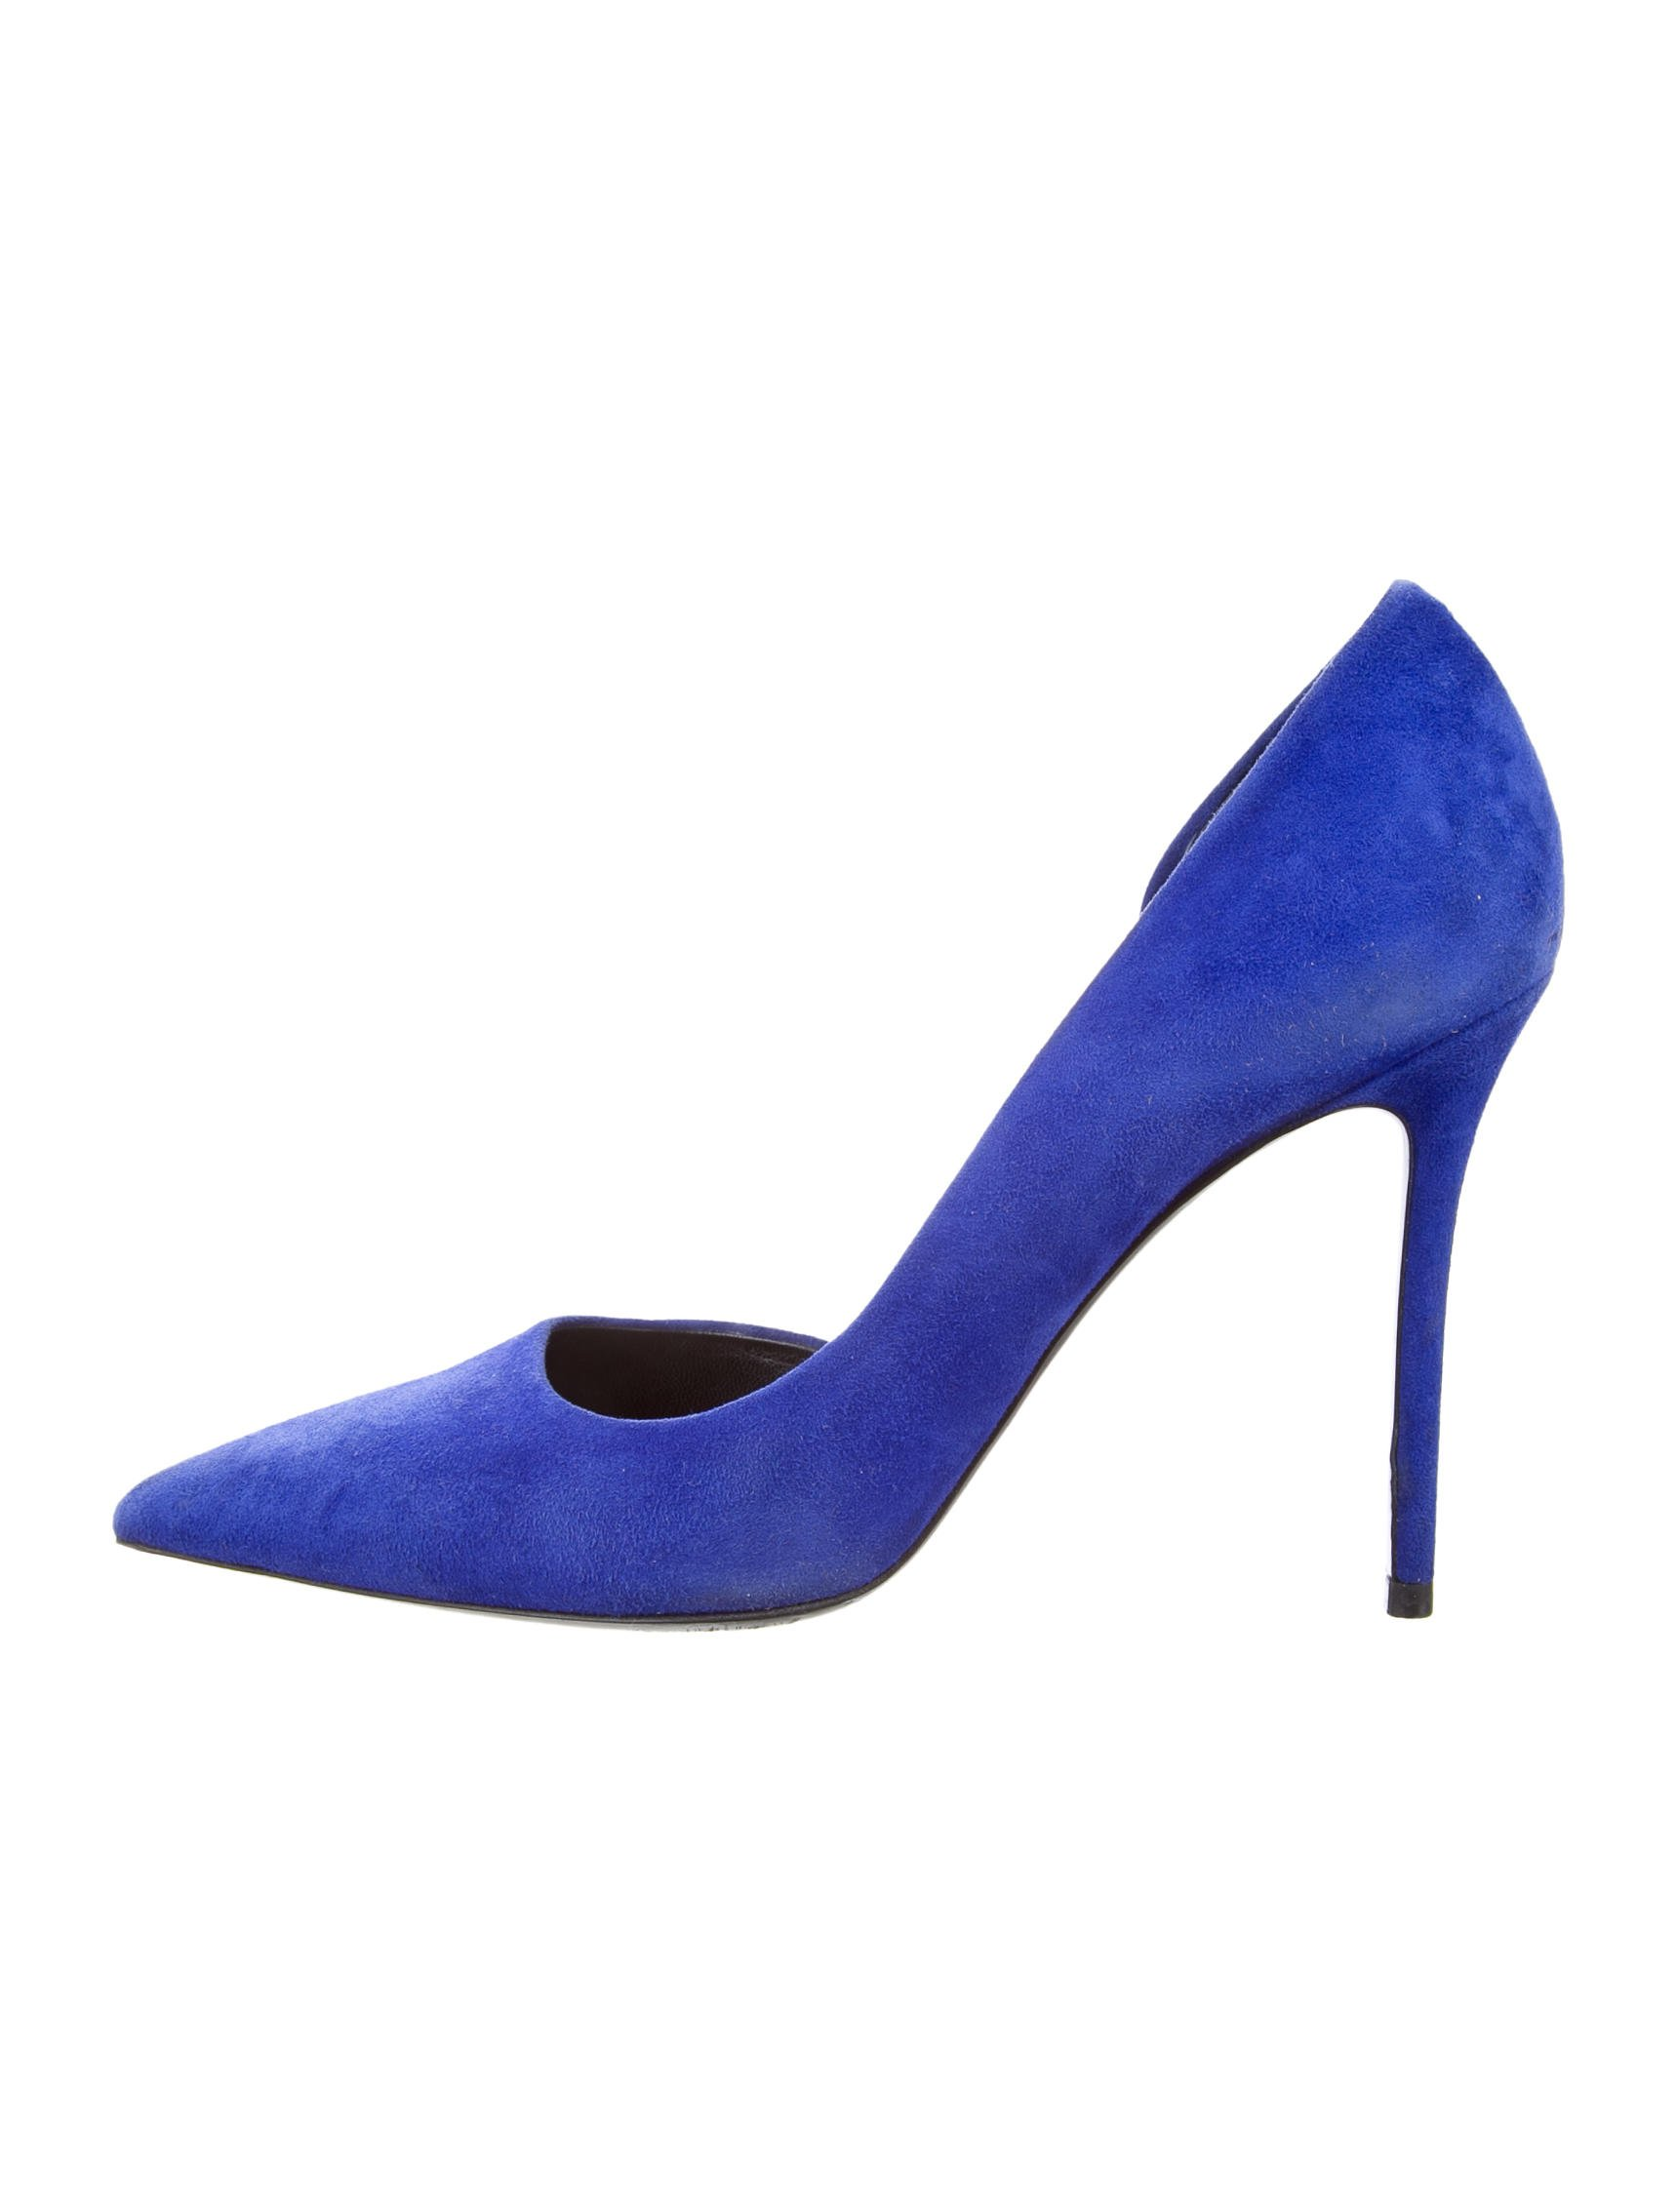 cheap sale extremely Céline Suede Semi D'Orsay Pumps very cheap 2015 new online 8GUn4